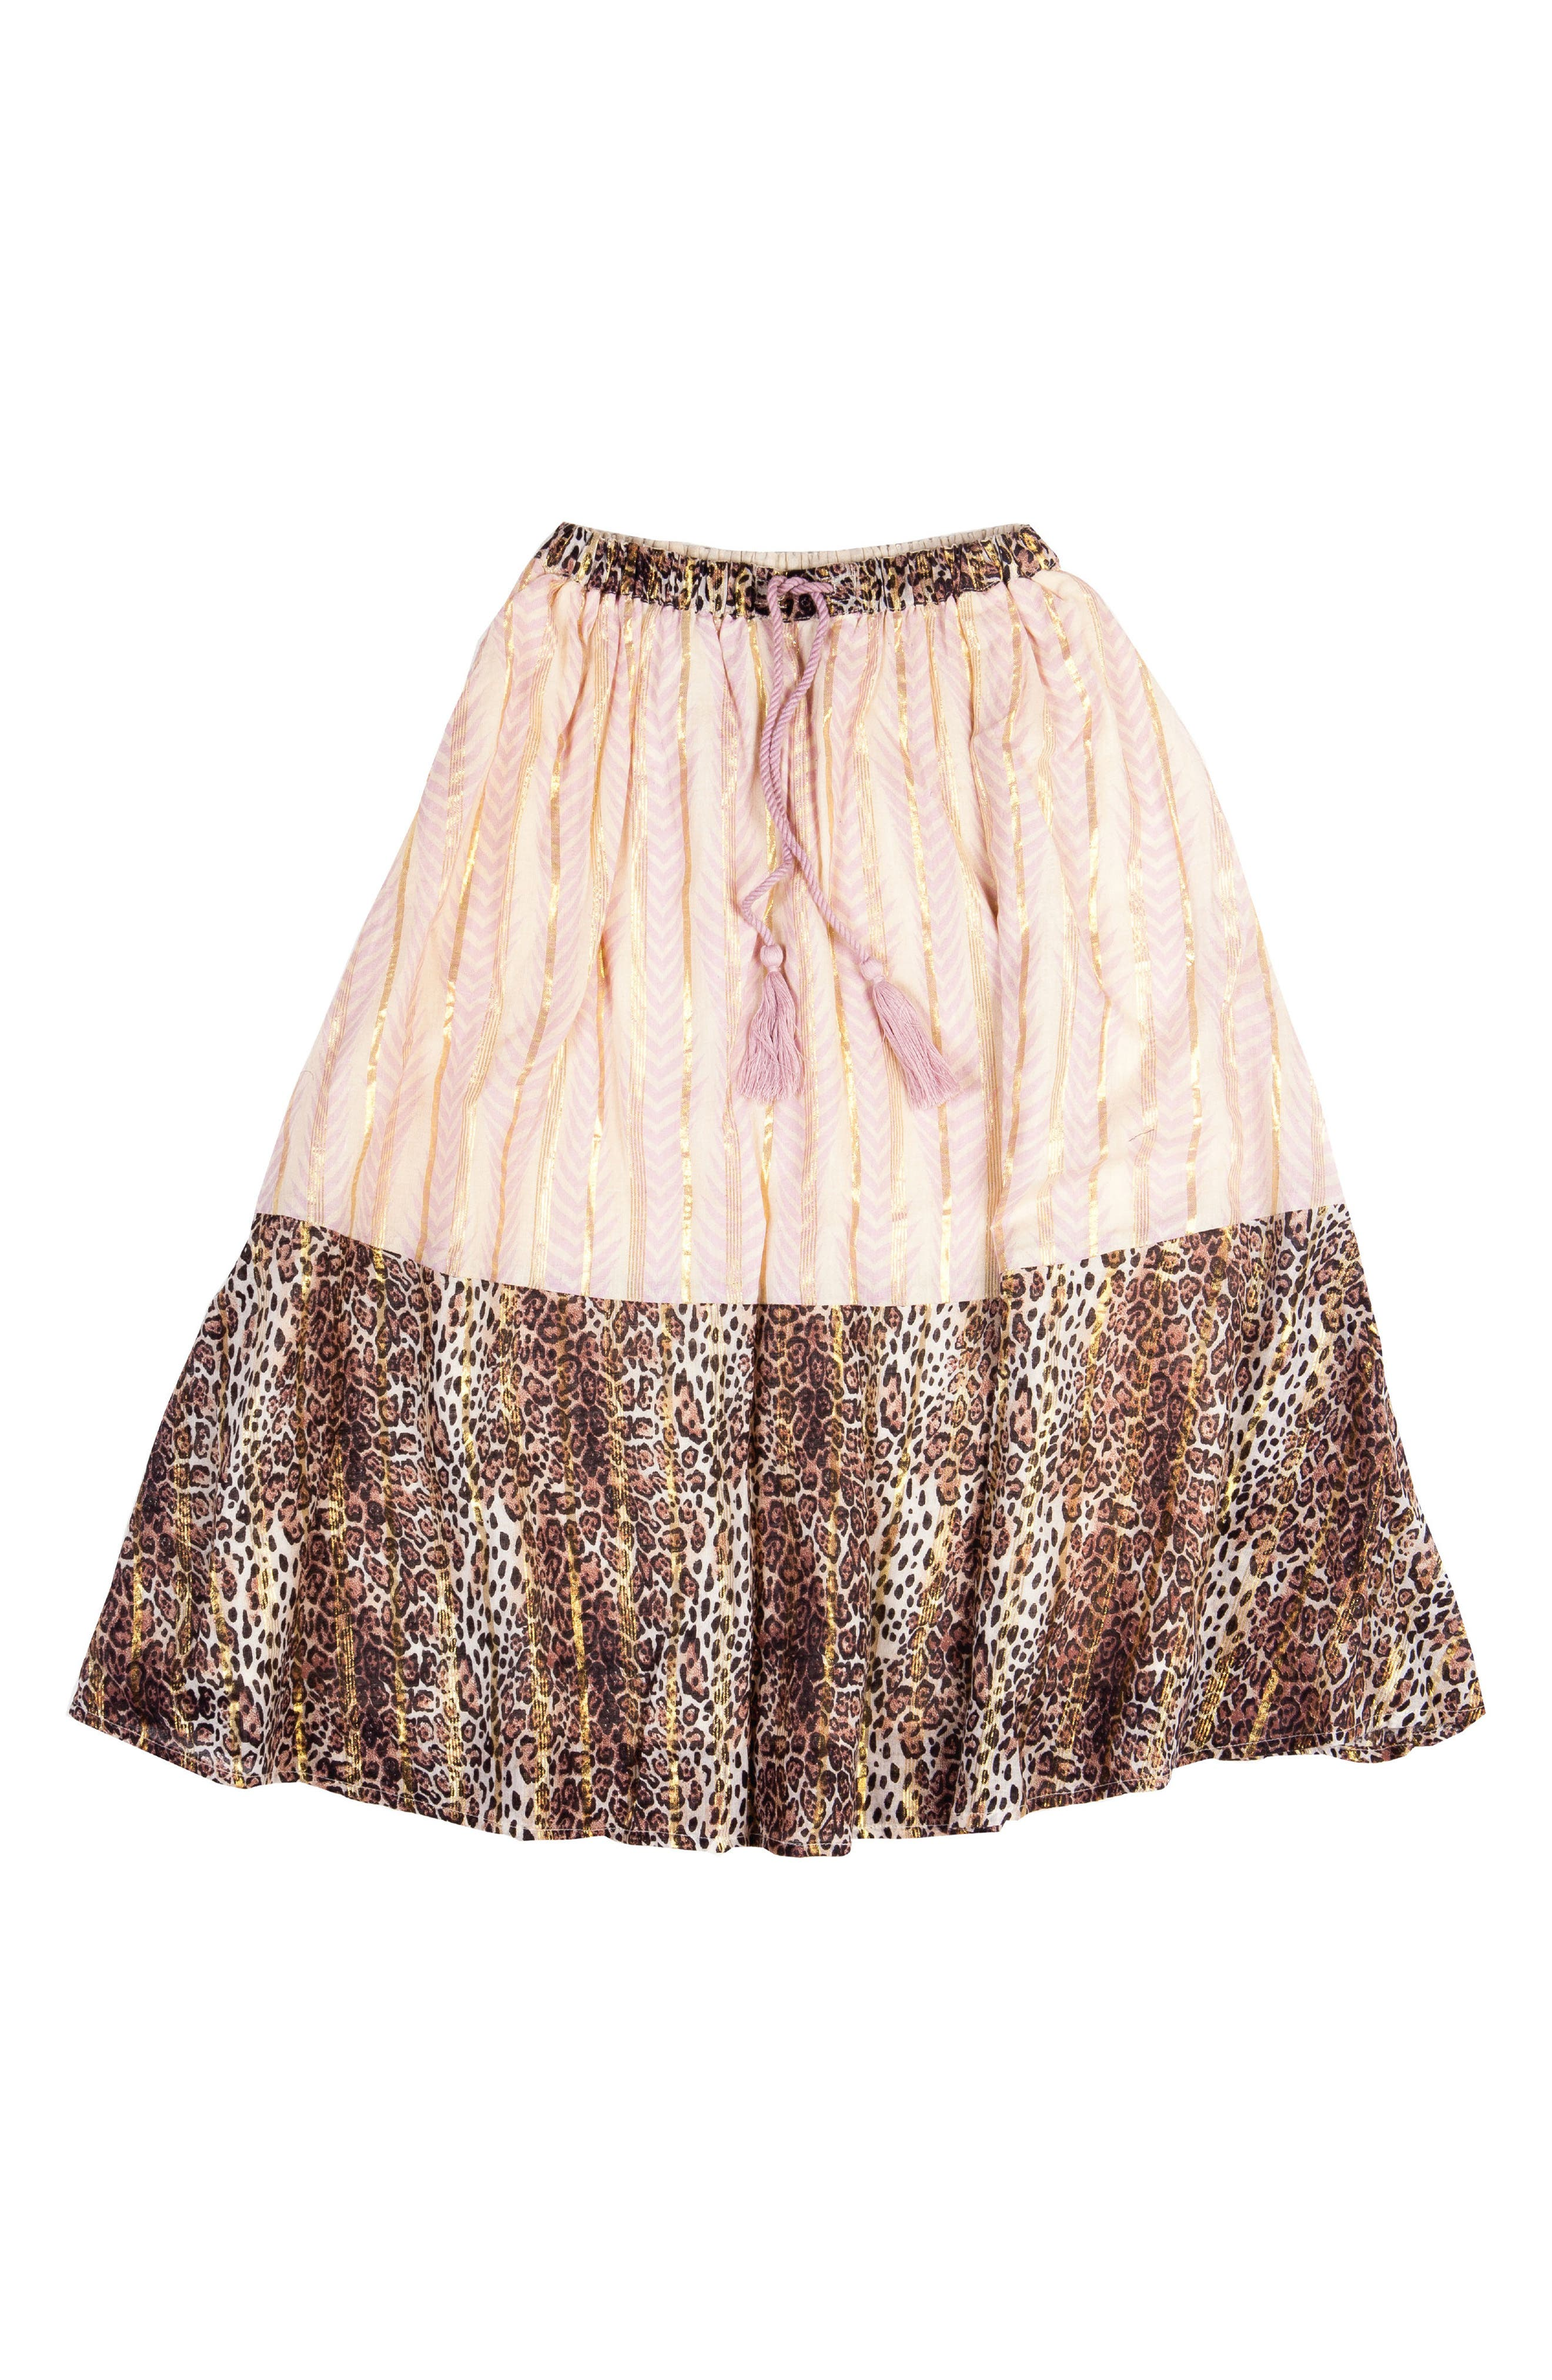 BOWIE X JAMES Print Skirt (Toddler Girls, Little Girls & Big Girls)